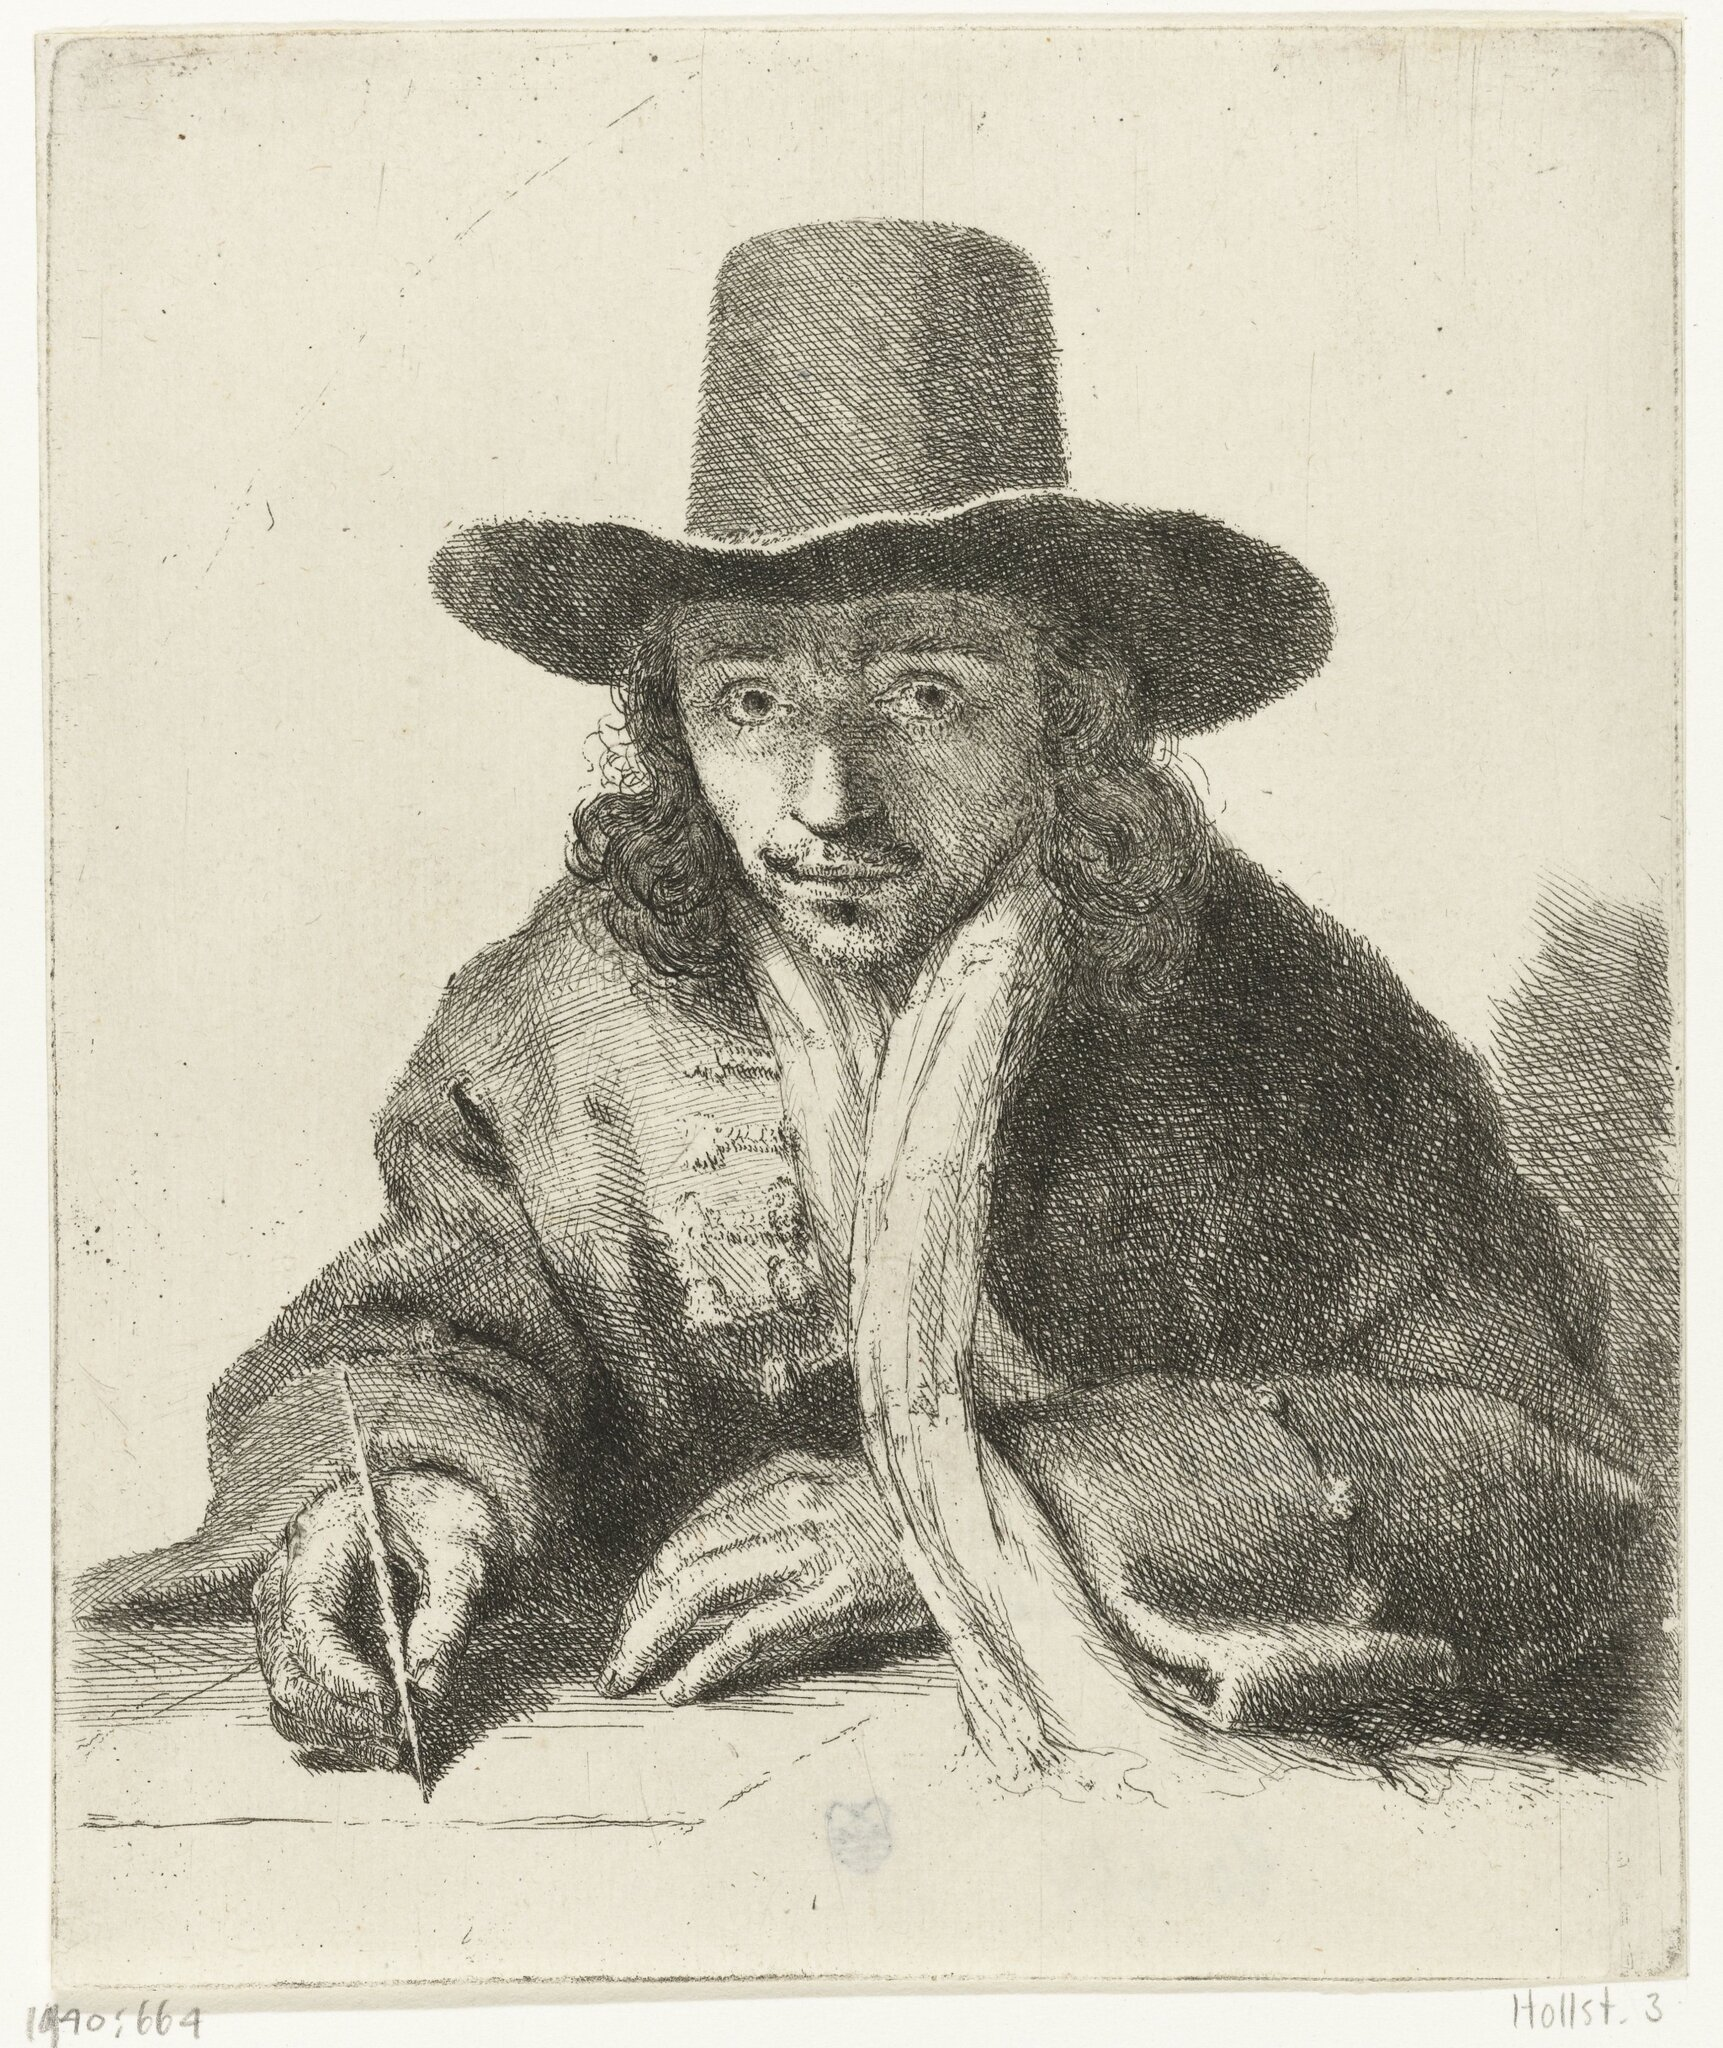 Selfies on paper: Self-portraits from Rembrandt to Willink on view at the Rijksmuseum